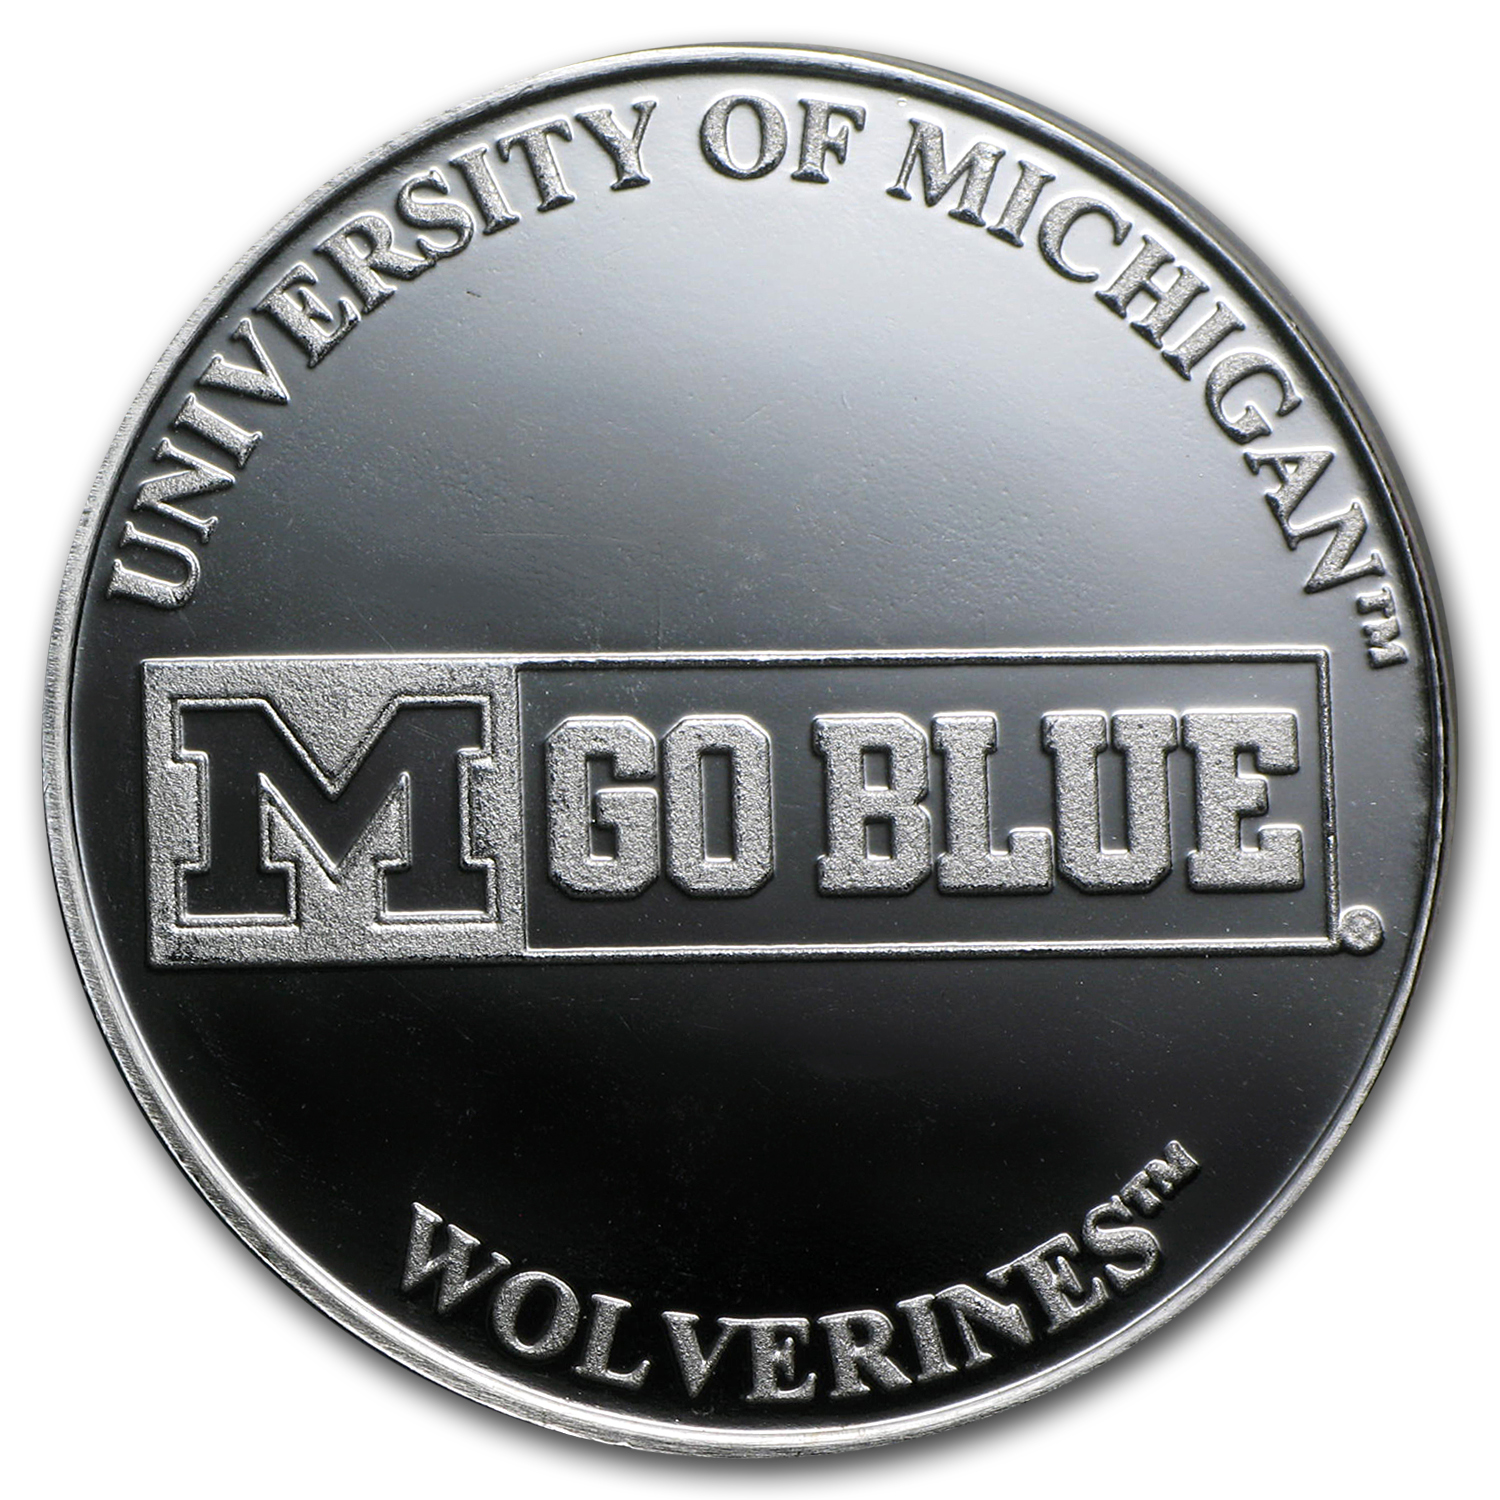 1 oz Silver Round - University of Michigan